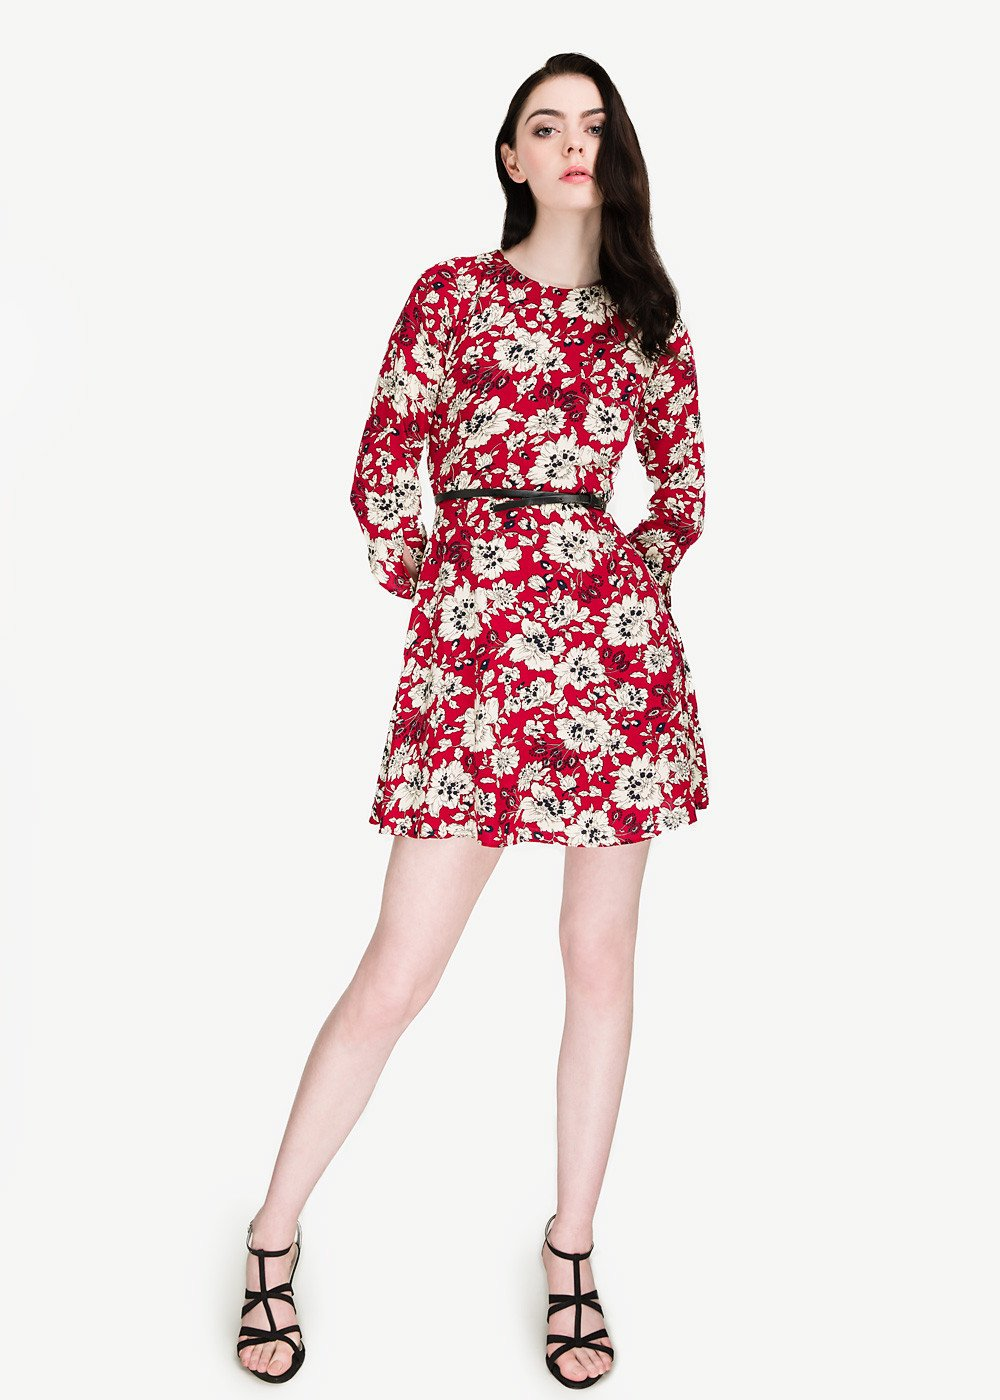 GFLOCK - [product_sku] - Women_Dresses - Floral Sleeve Tie Up Dress